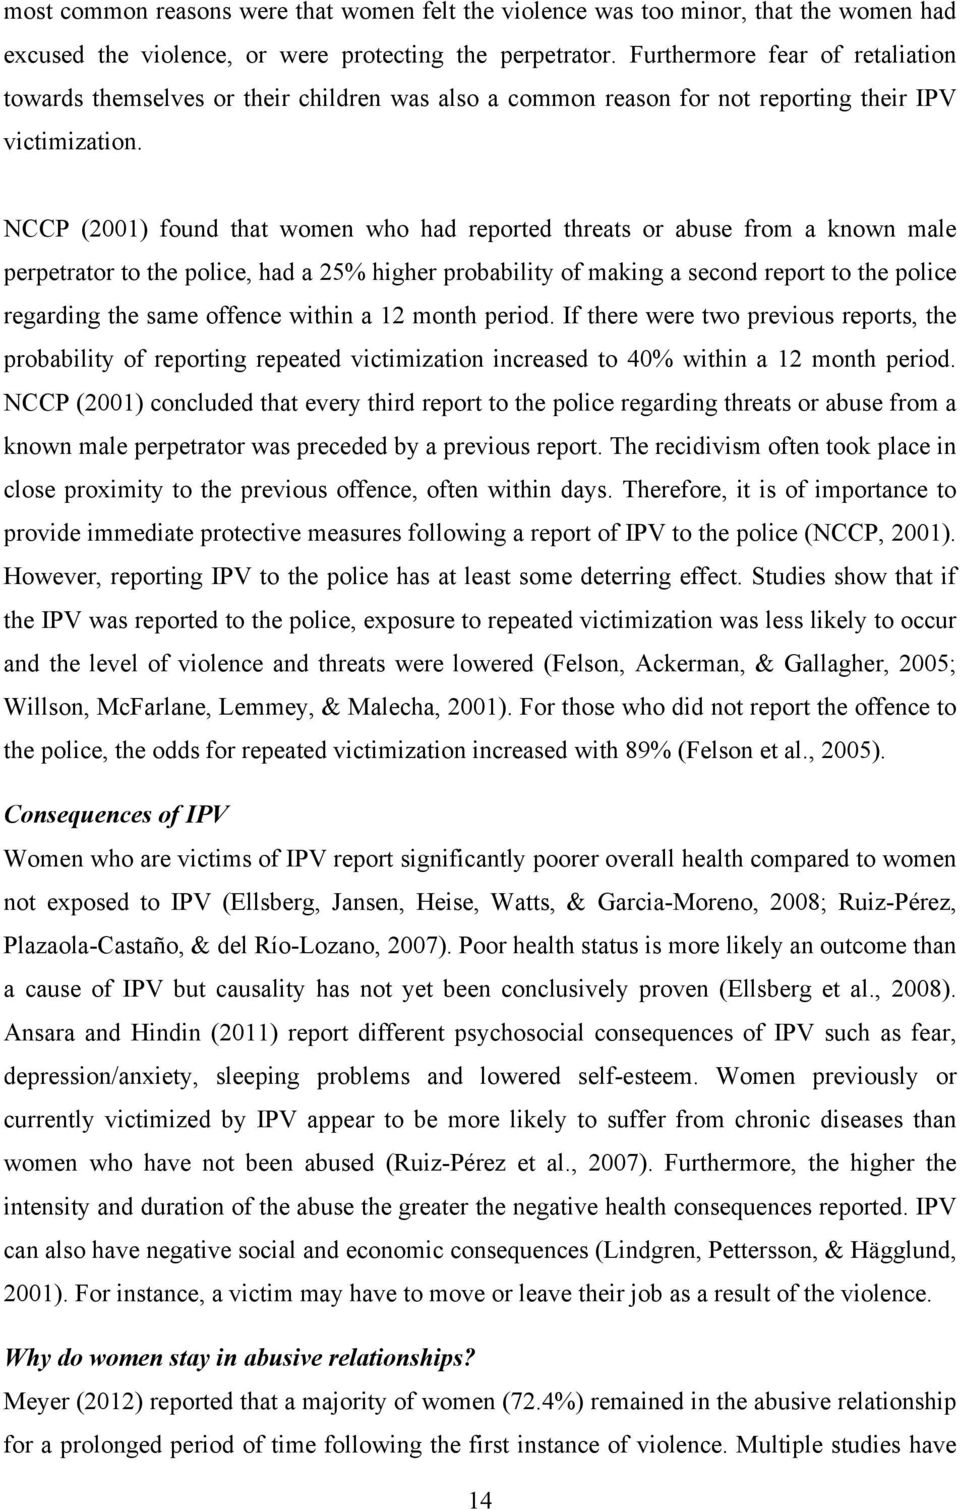 NCCP (2001) found that women who had reported threats or abuse from a known male perpetrator to the police, had a 25% higher probability of making a second report to the police regarding the same